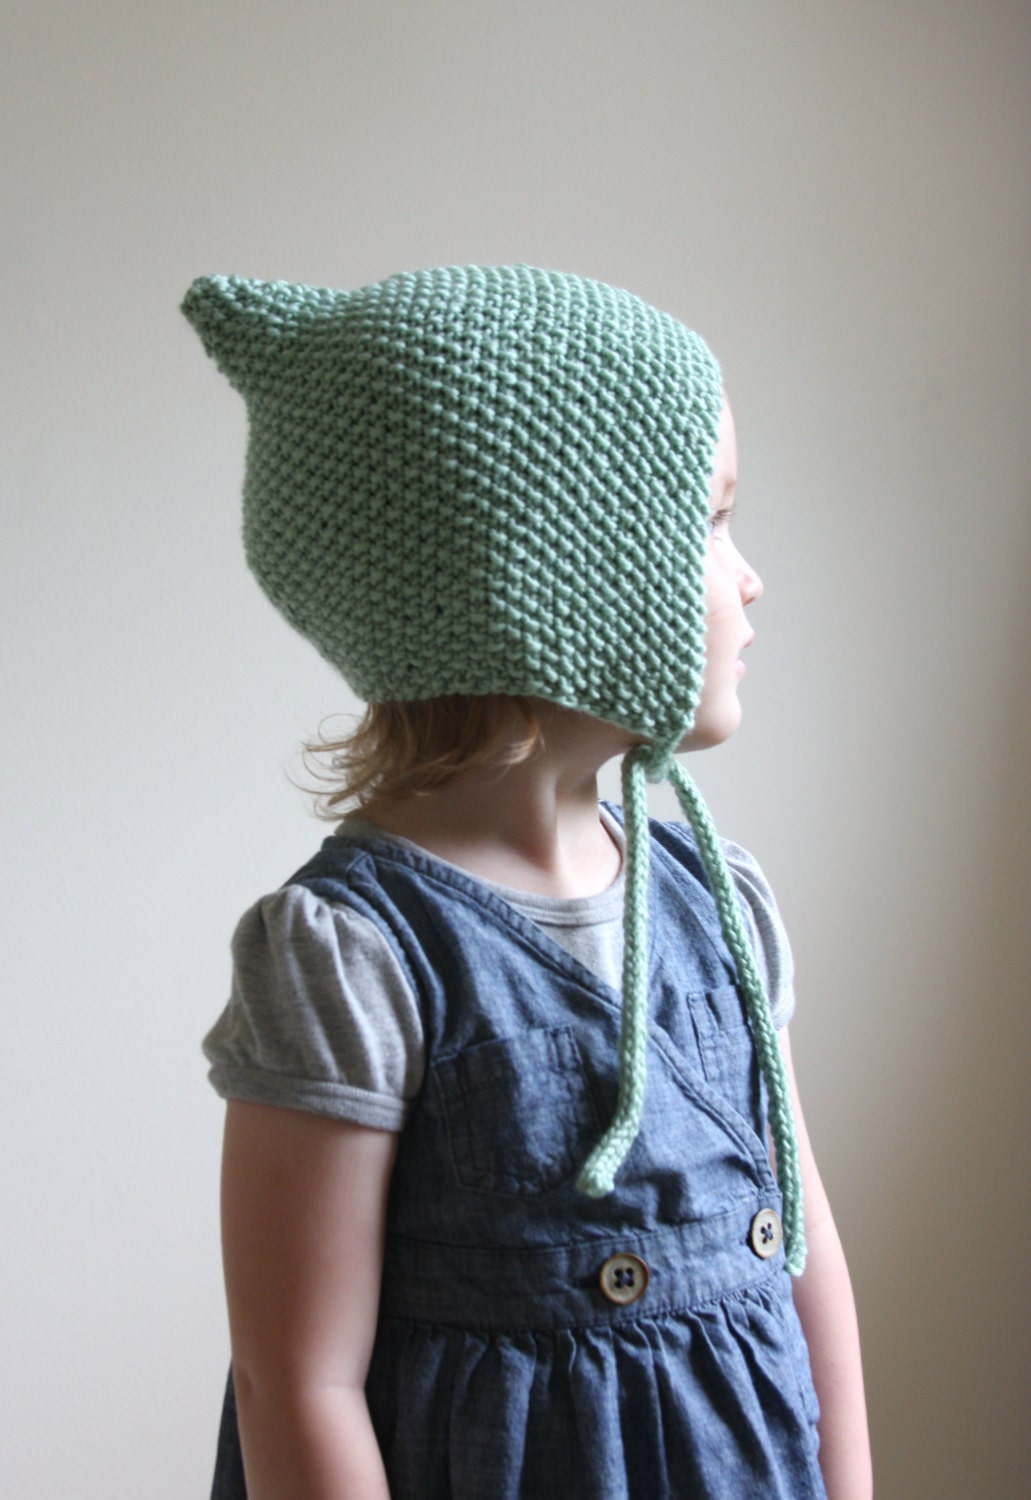 KNITTING PATTERN PDF File Knit Pixie Bonnet by hilaryfrazier